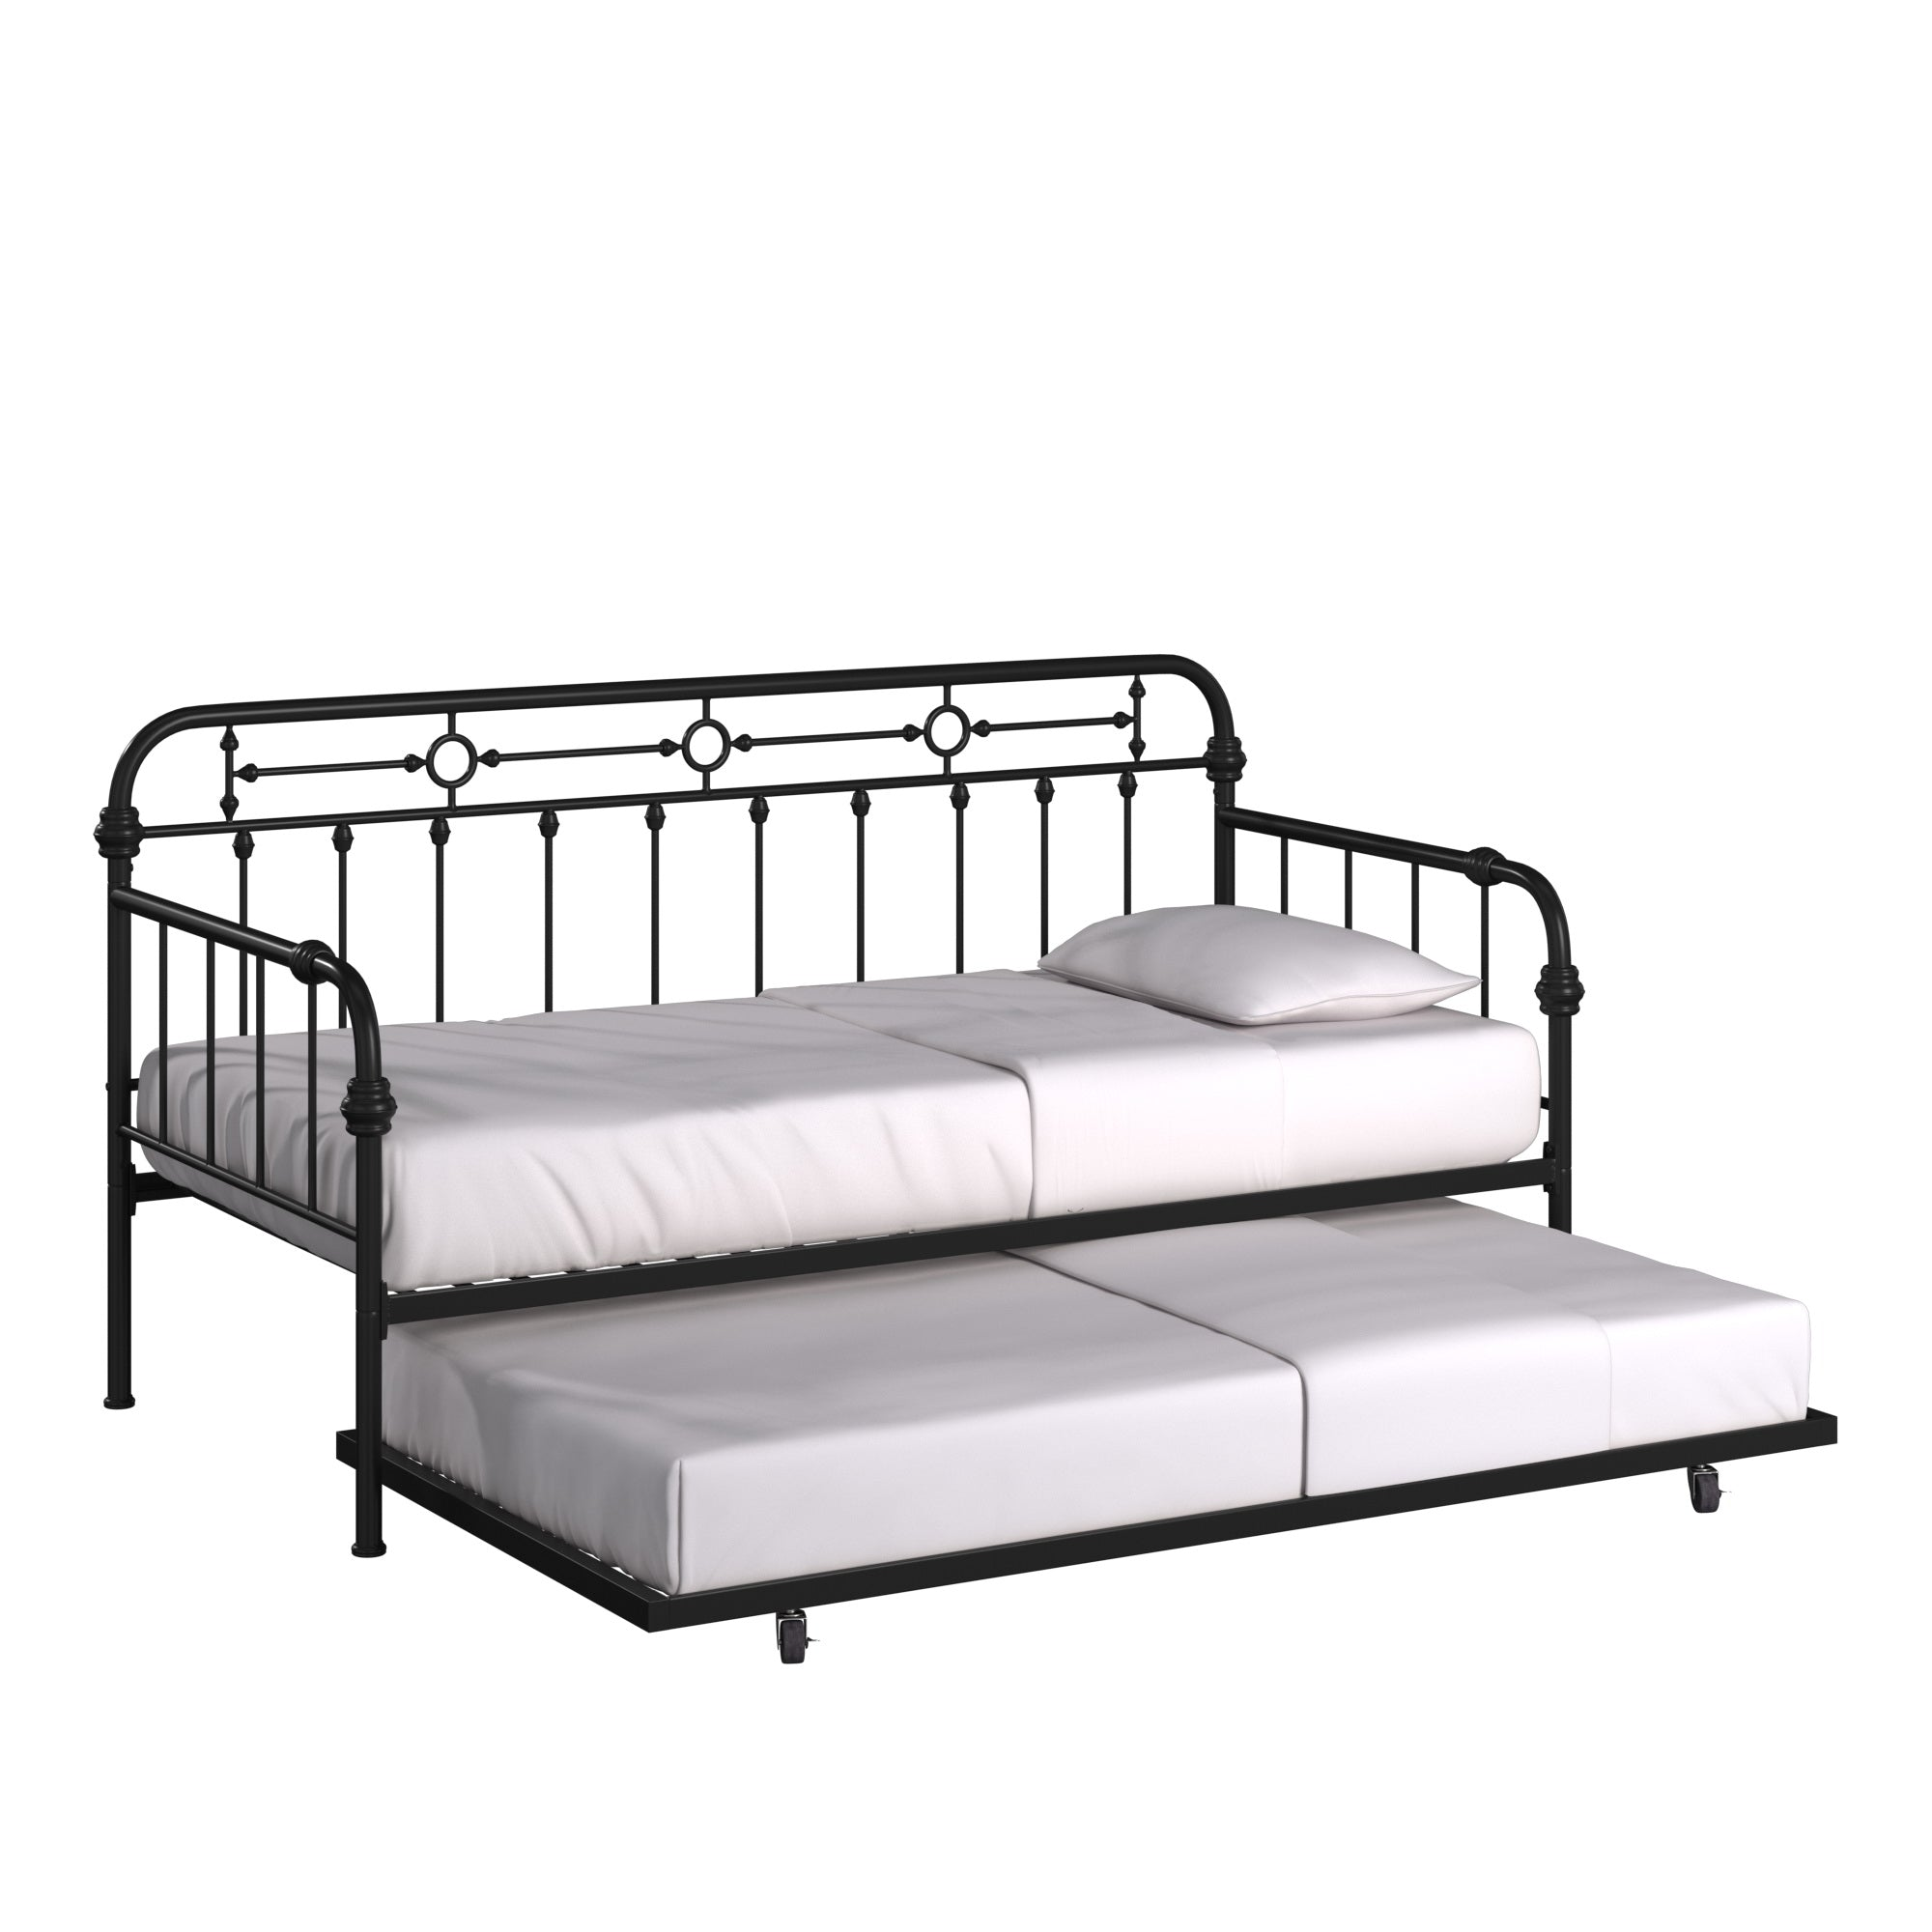 Antique Dark Bronze Metal Twin Size Daybed with Trundle Bed